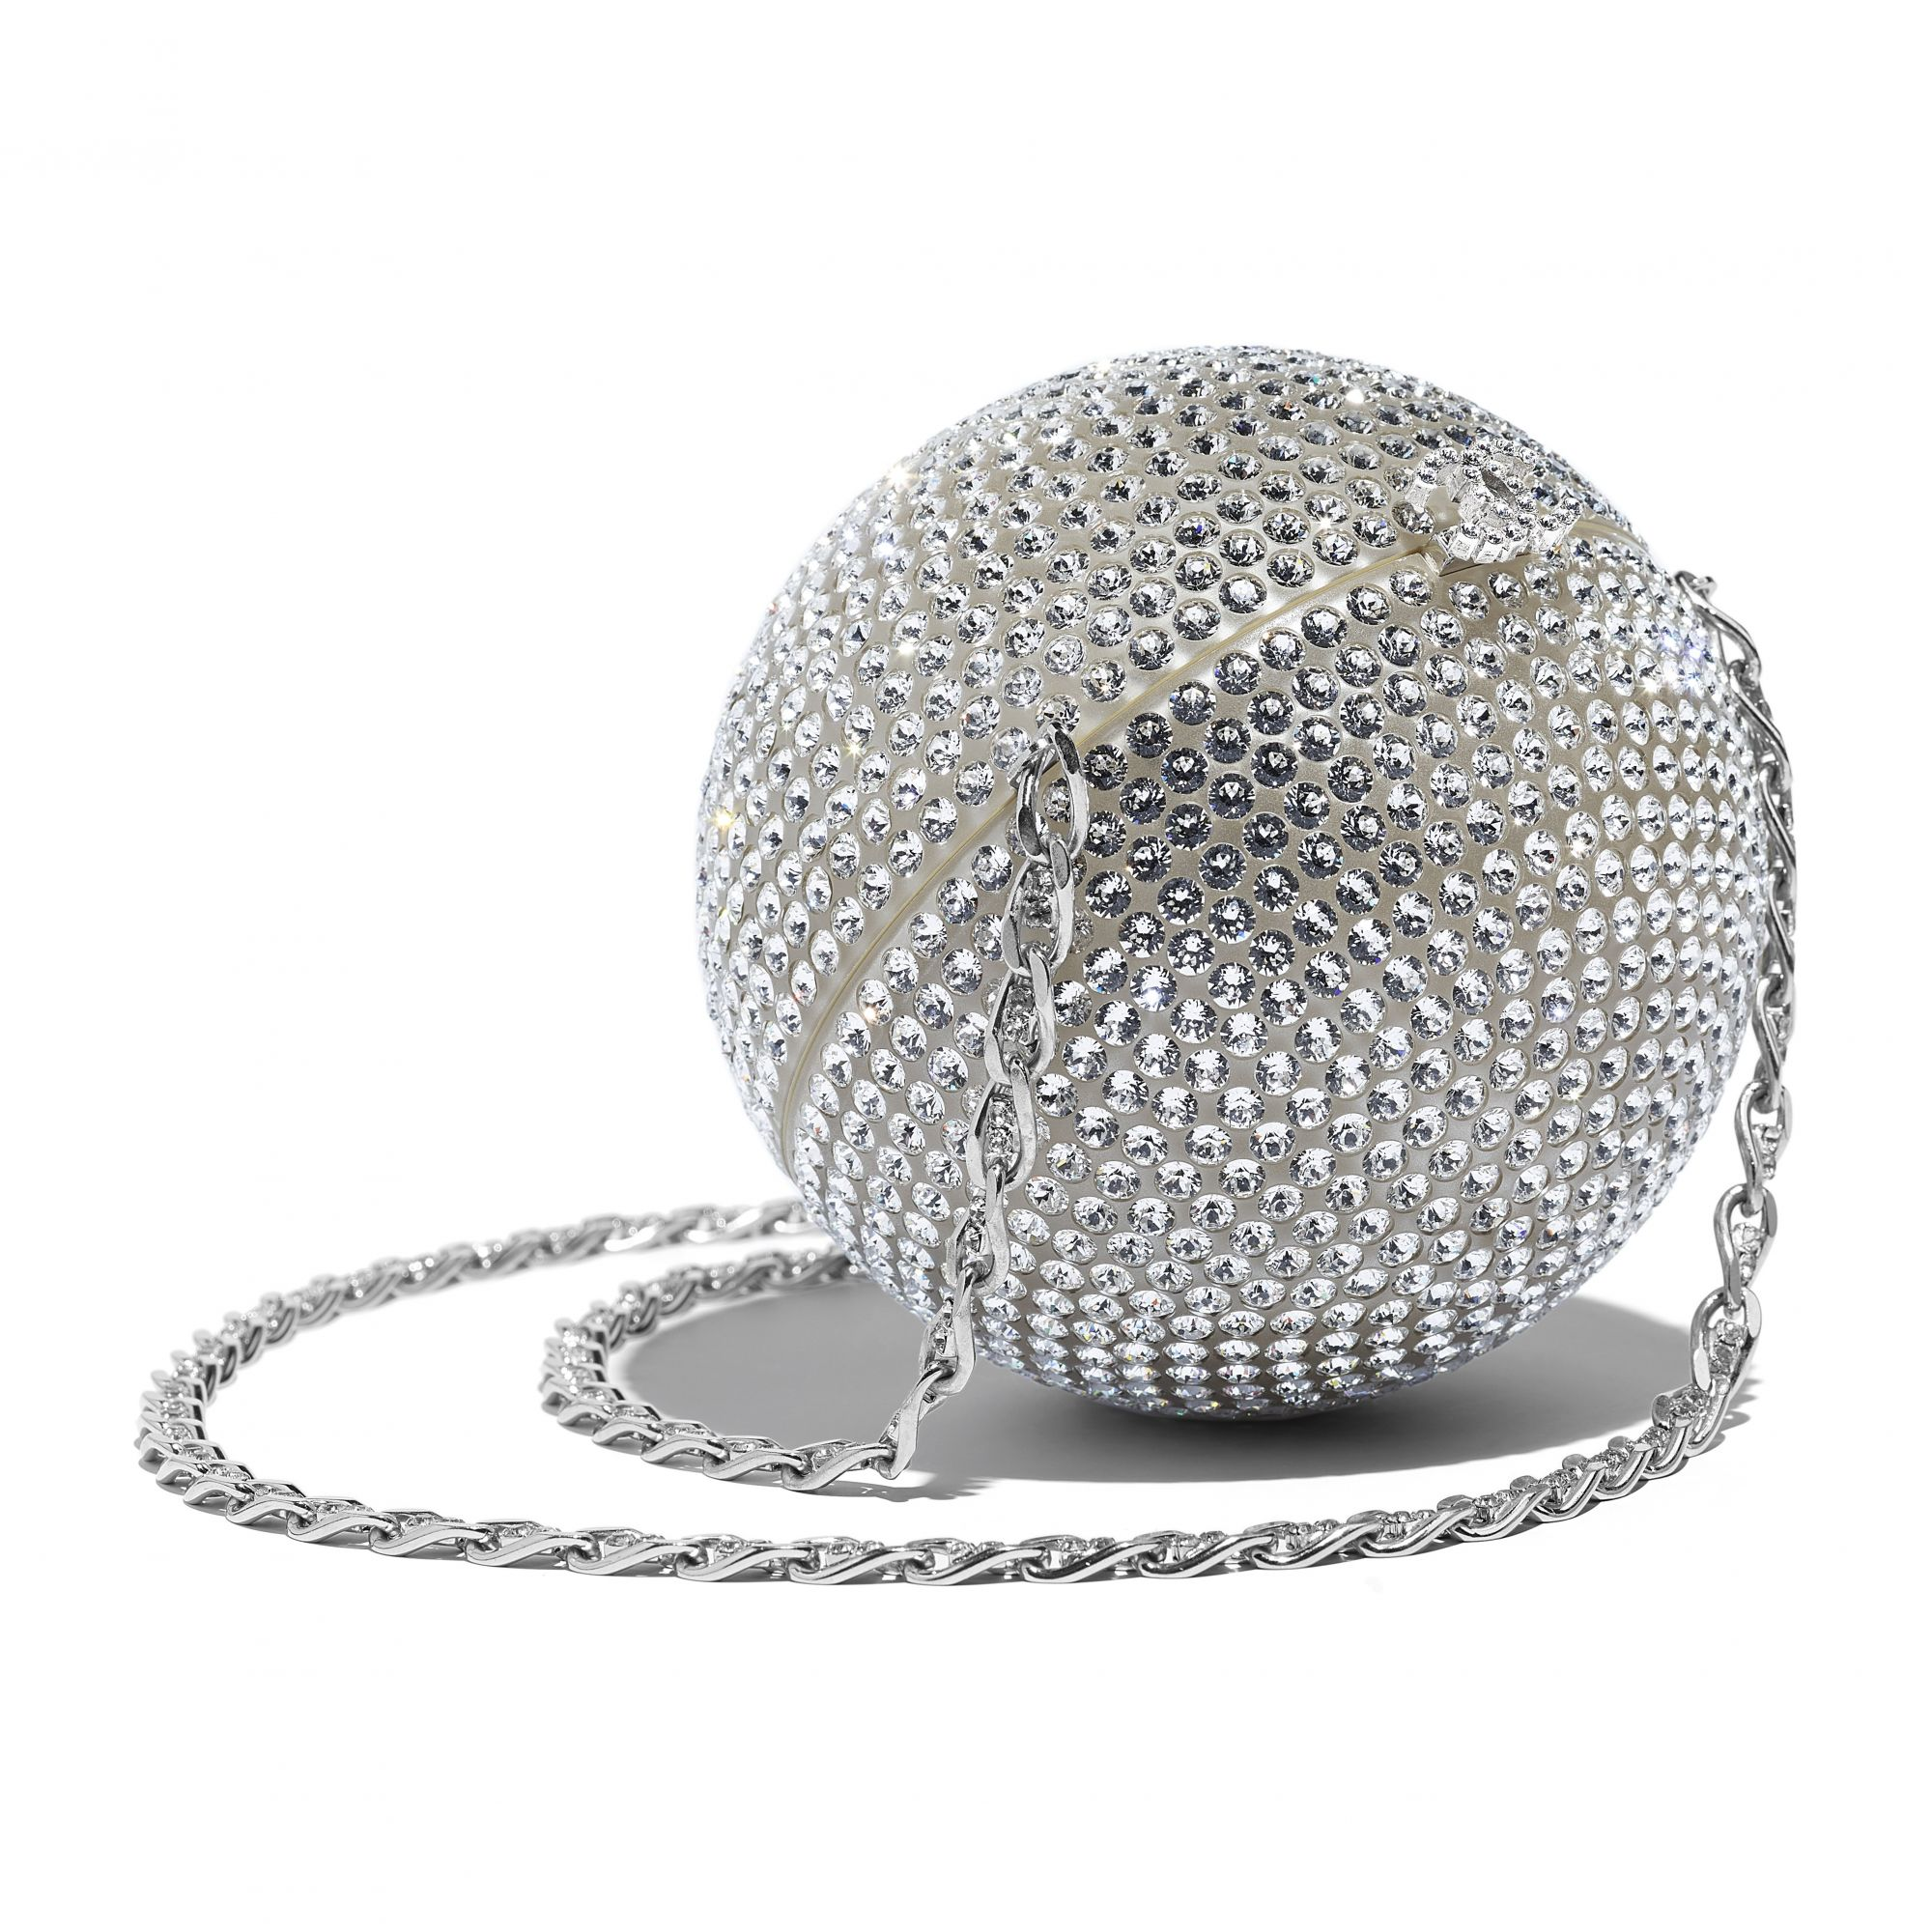 Minaudiere in metal, leather and strass